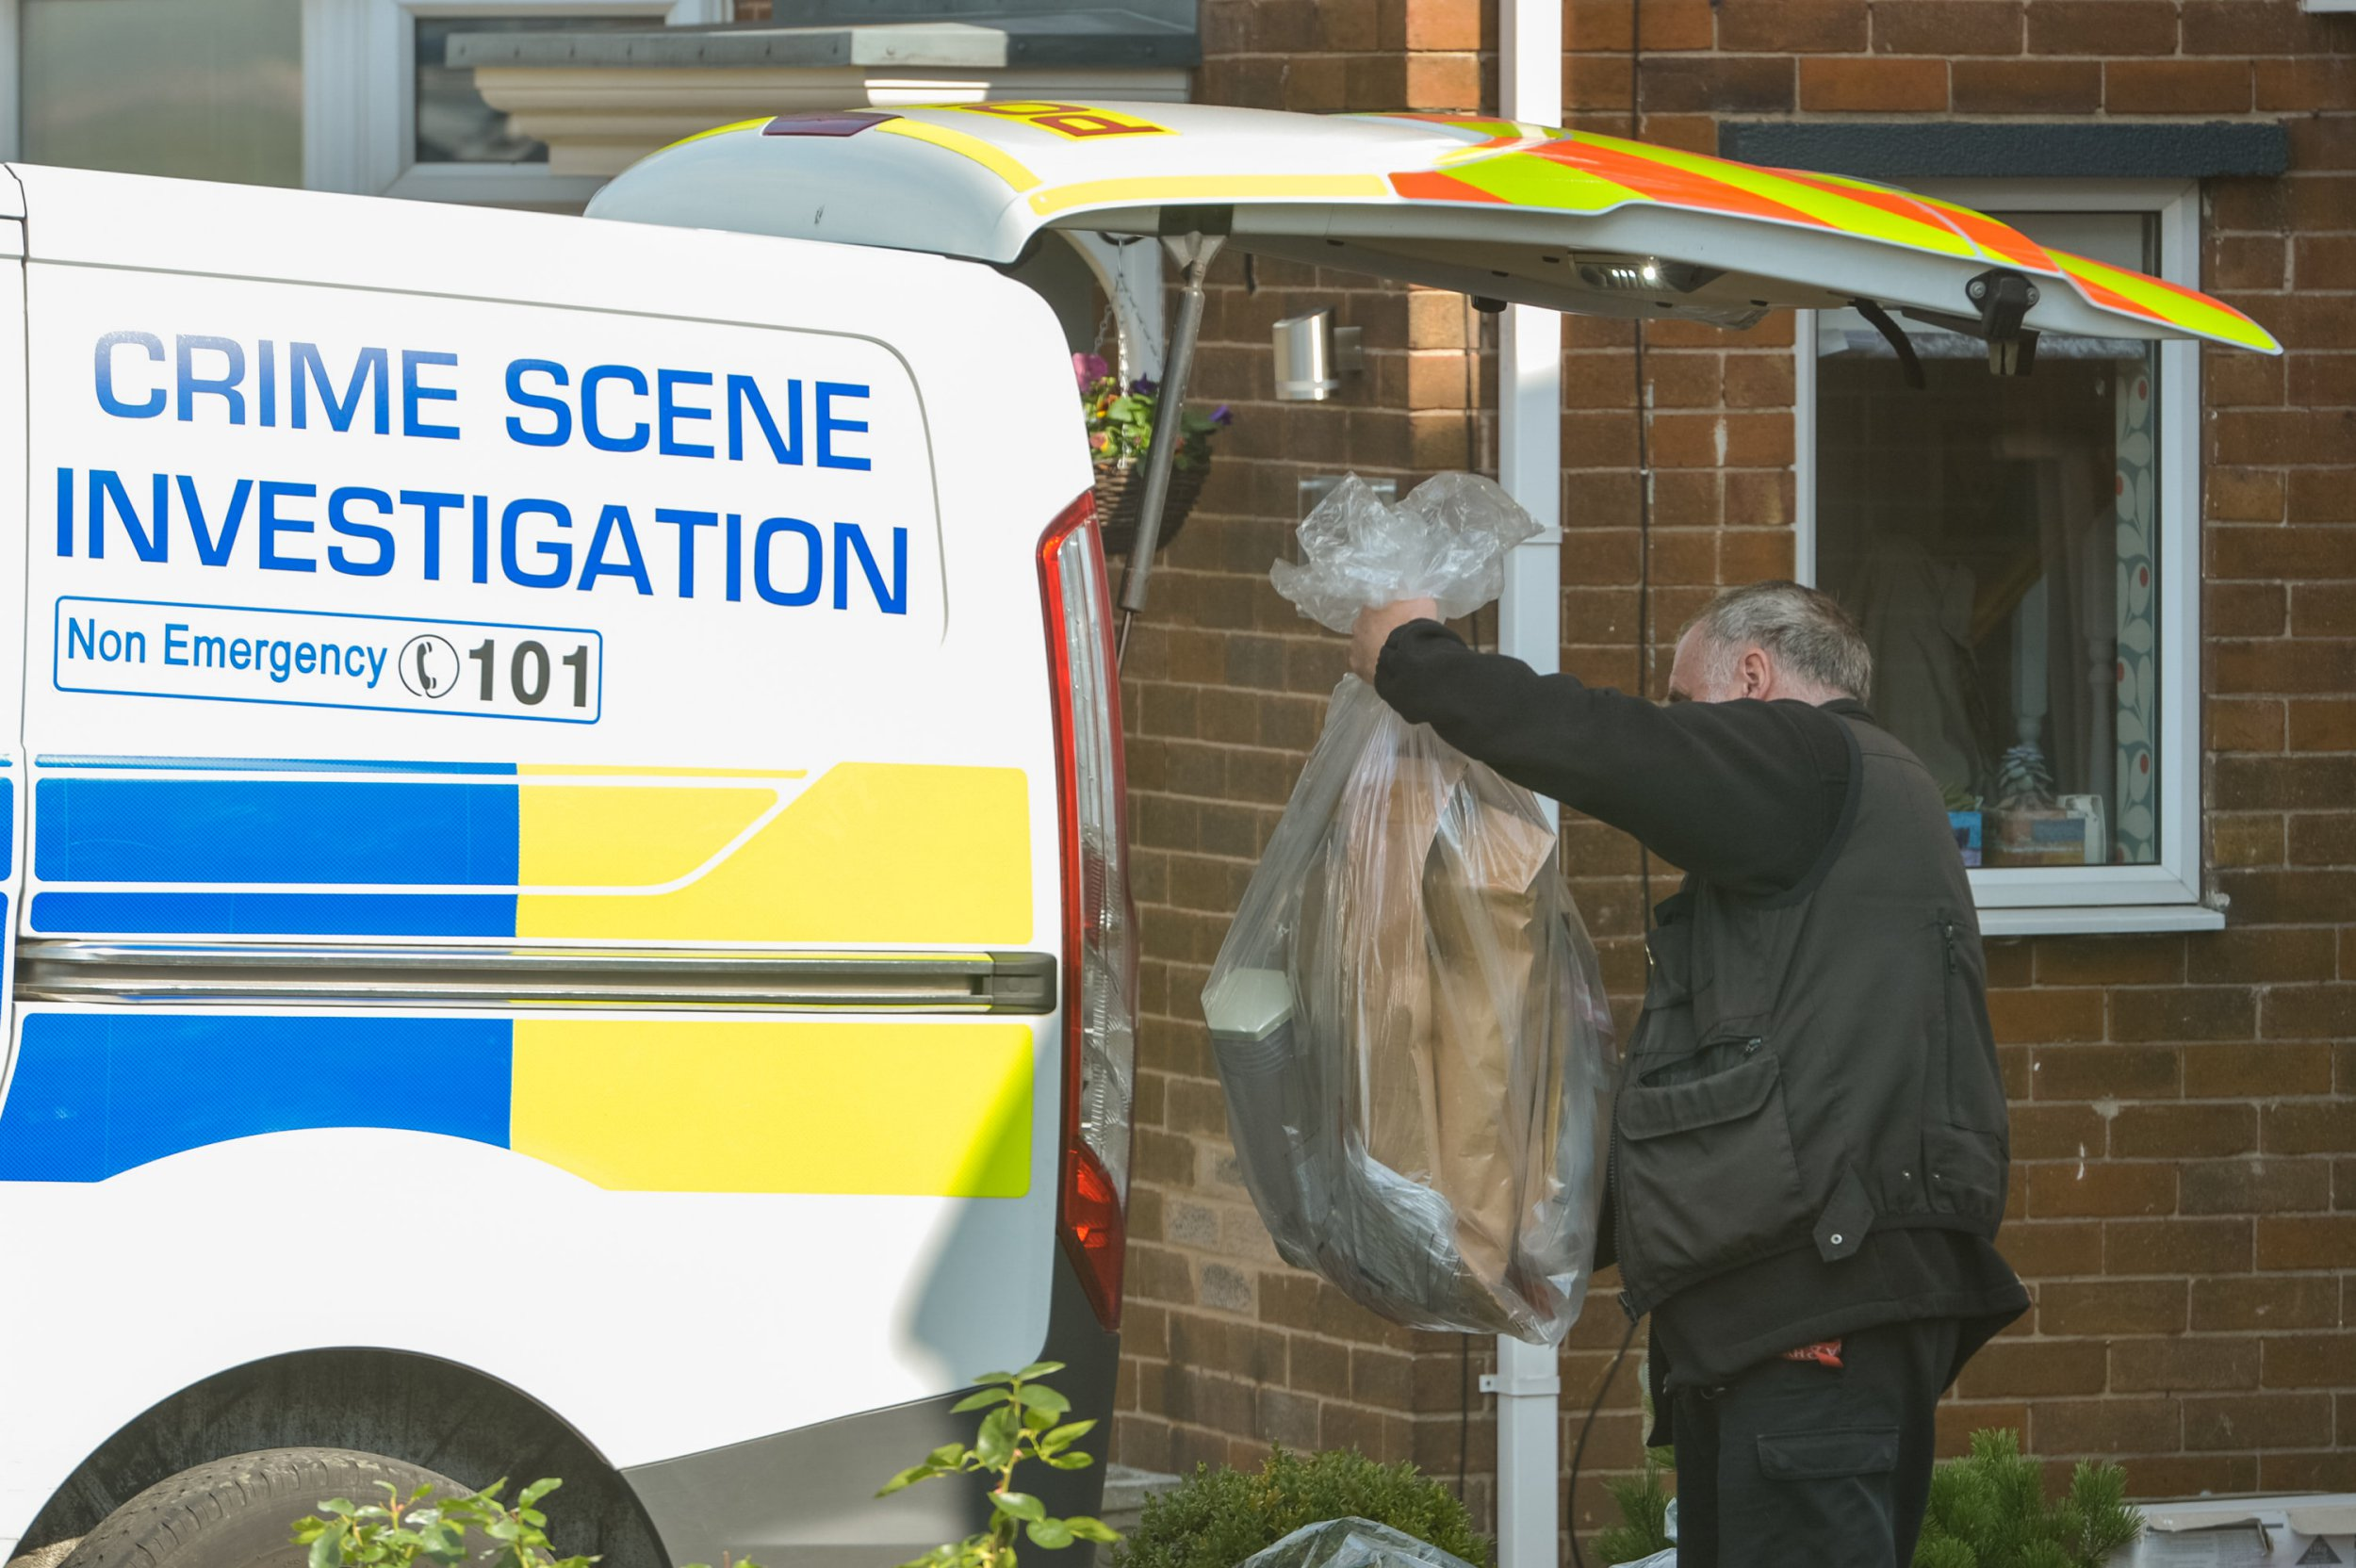 Police remove objects from inside the house where an 83 year old woman is suspected of murdering an 85 year old man (named locally as Alan Grayson), in the Handsworth area of Sheffield, South Yorks., September 13 2018. See Ross Parry story RPYMURDER: